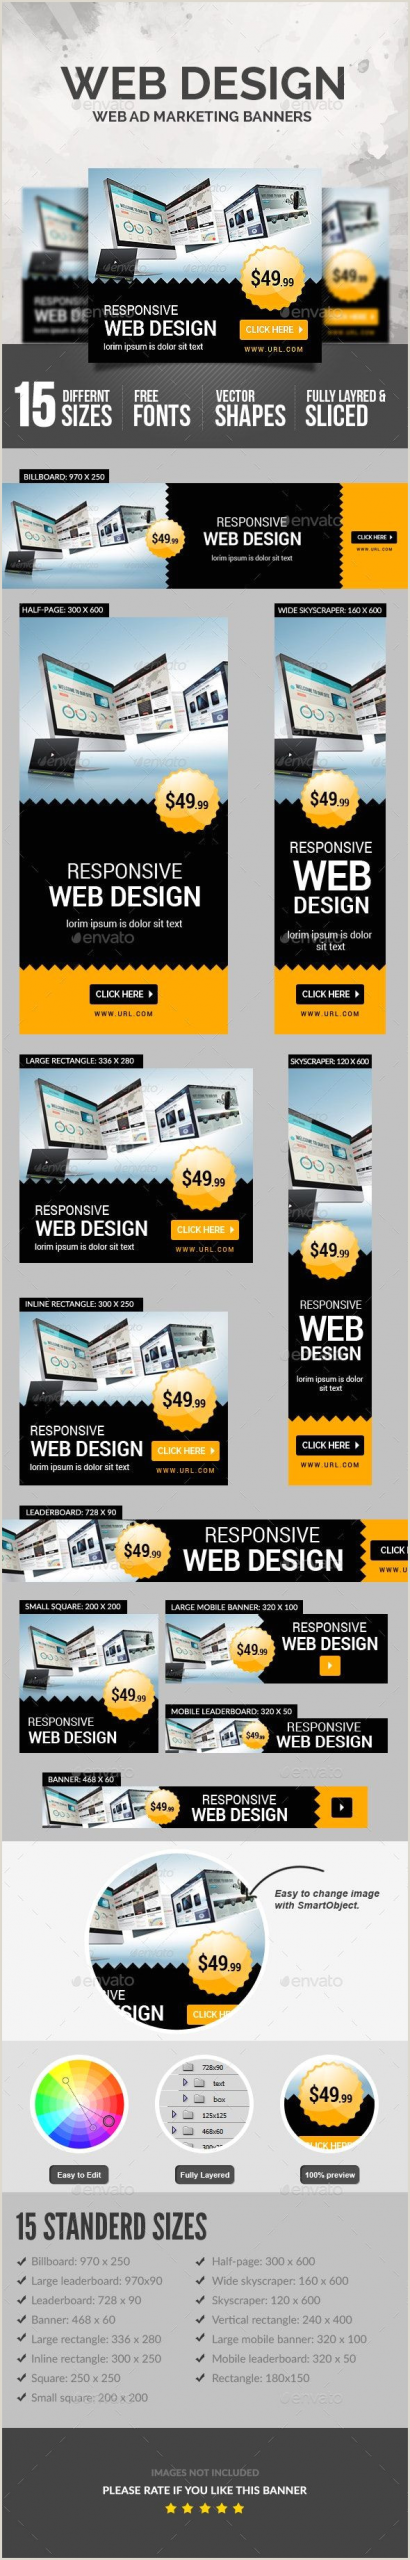 Large Banner Sizes Web Design Banners